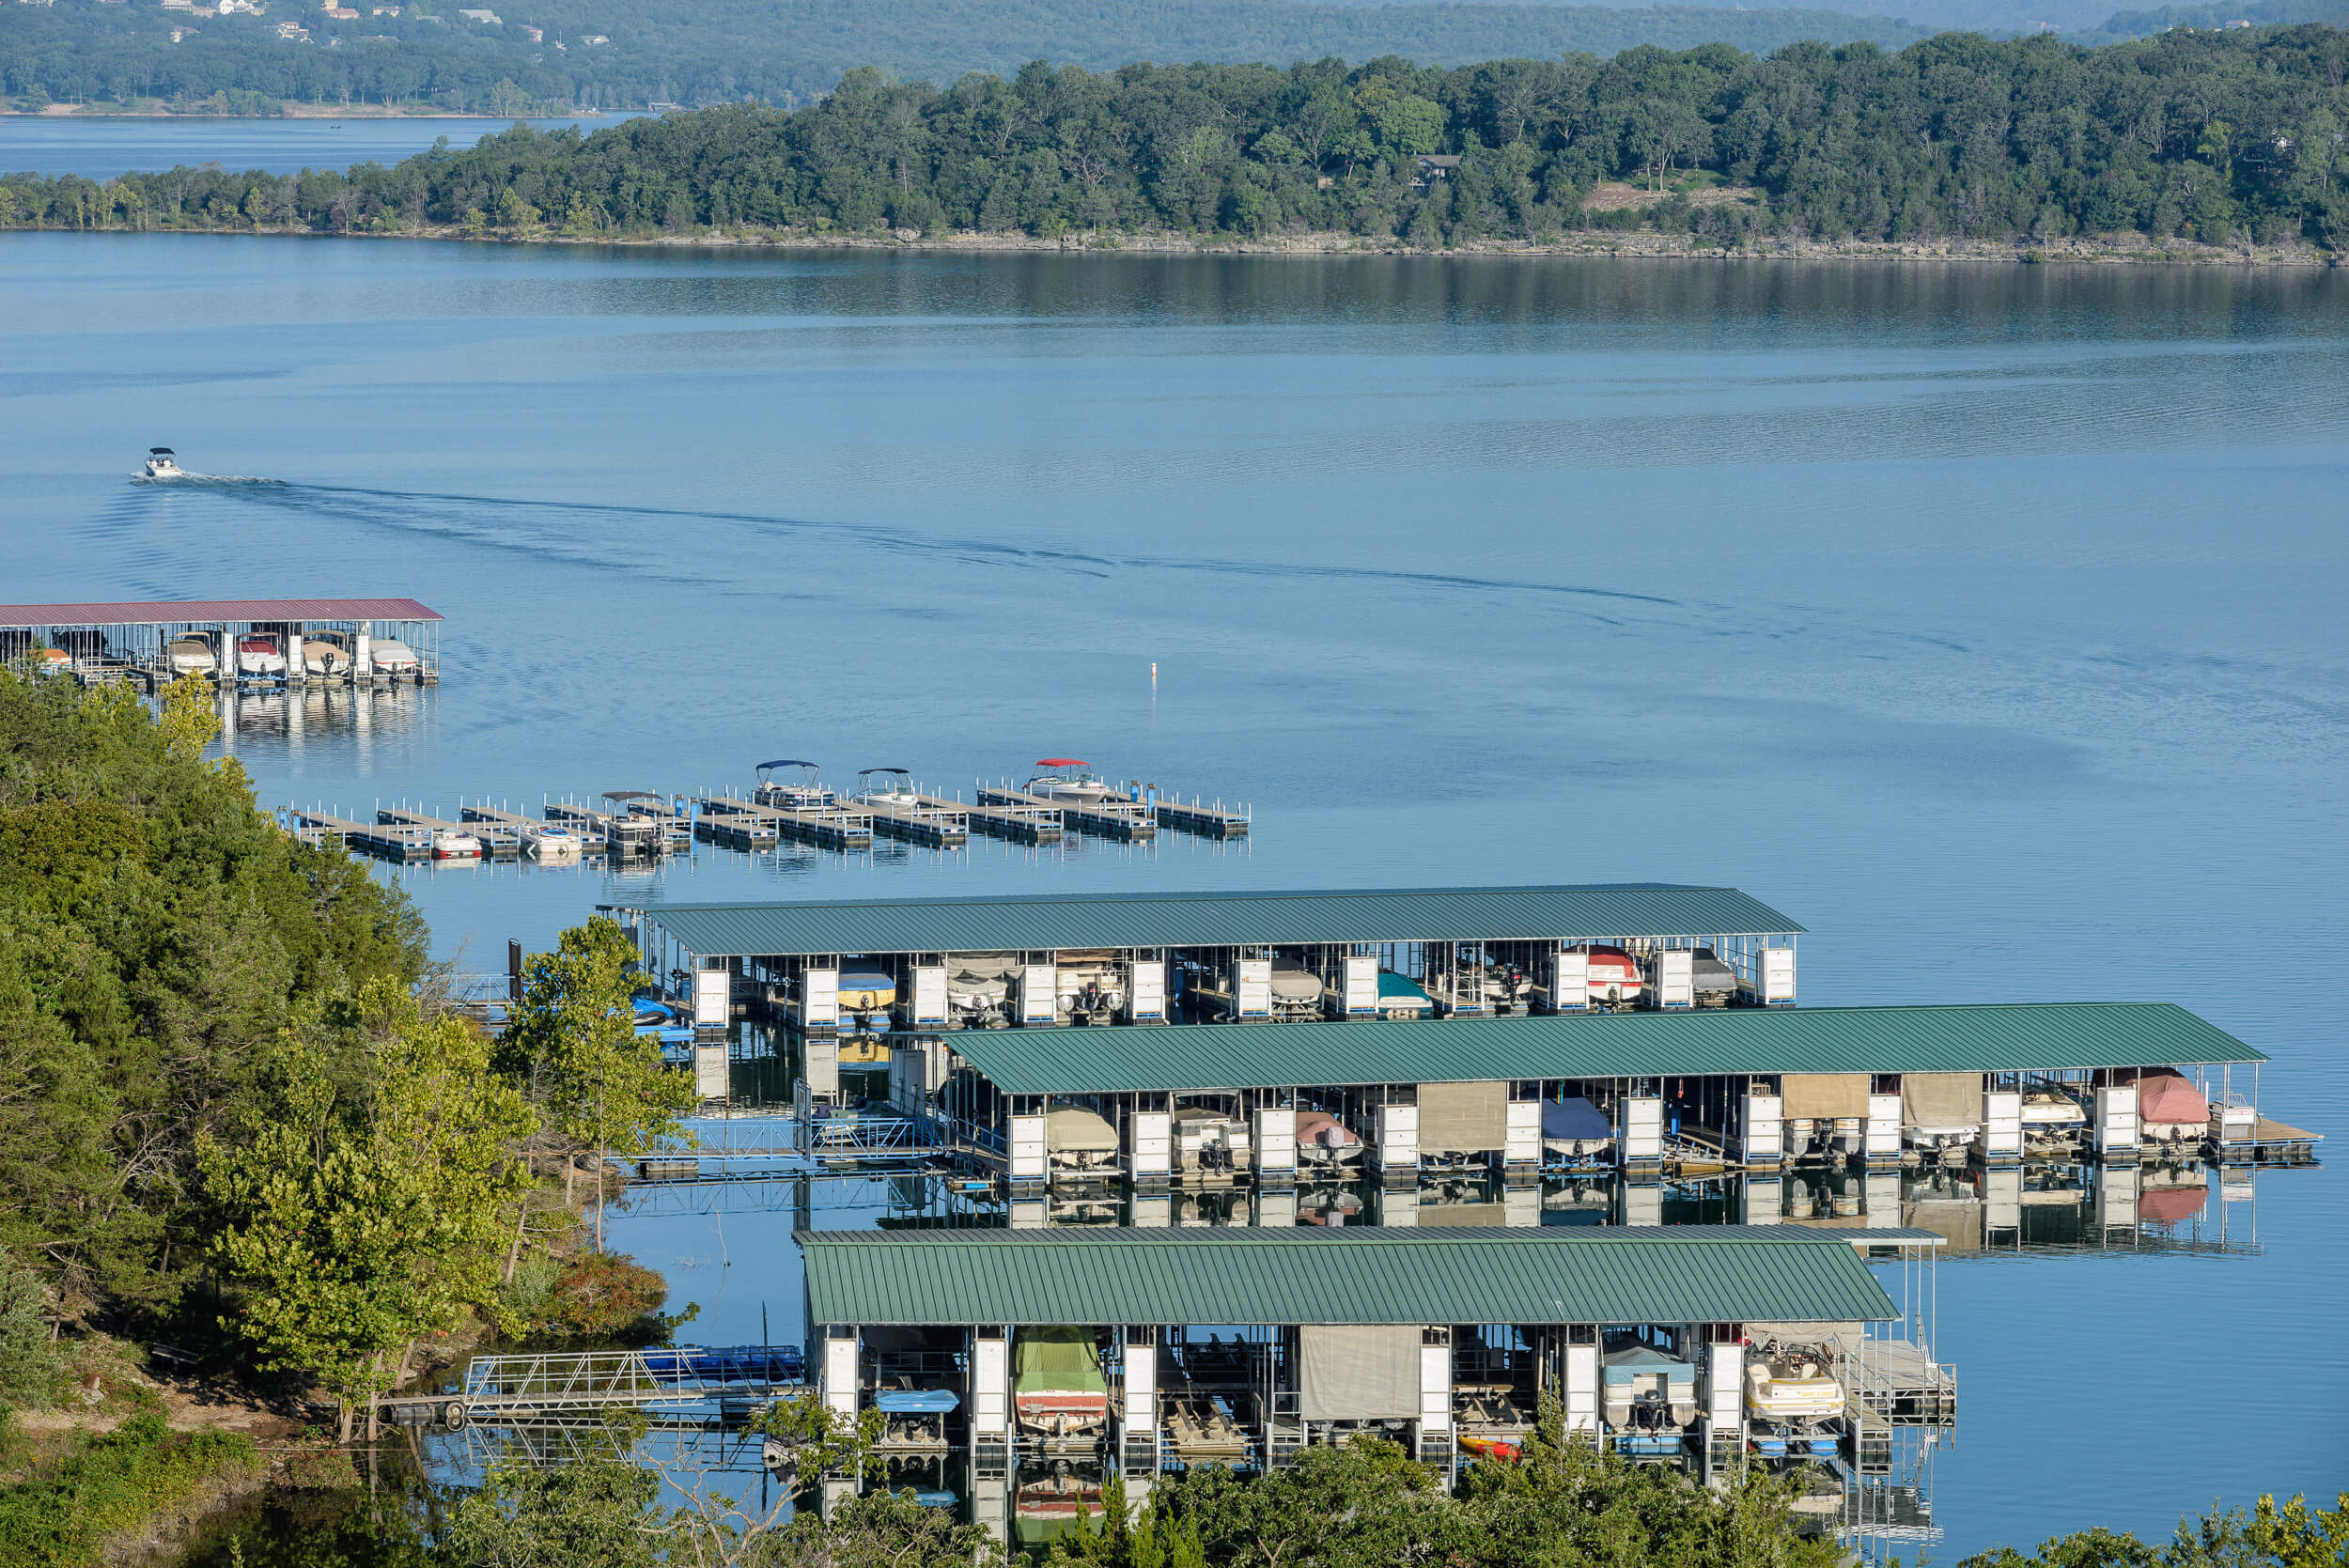 Boat marina on Table Rock Lake | Westgate Branson Lakes Resort | Westgate Lake Resorts in Missouri